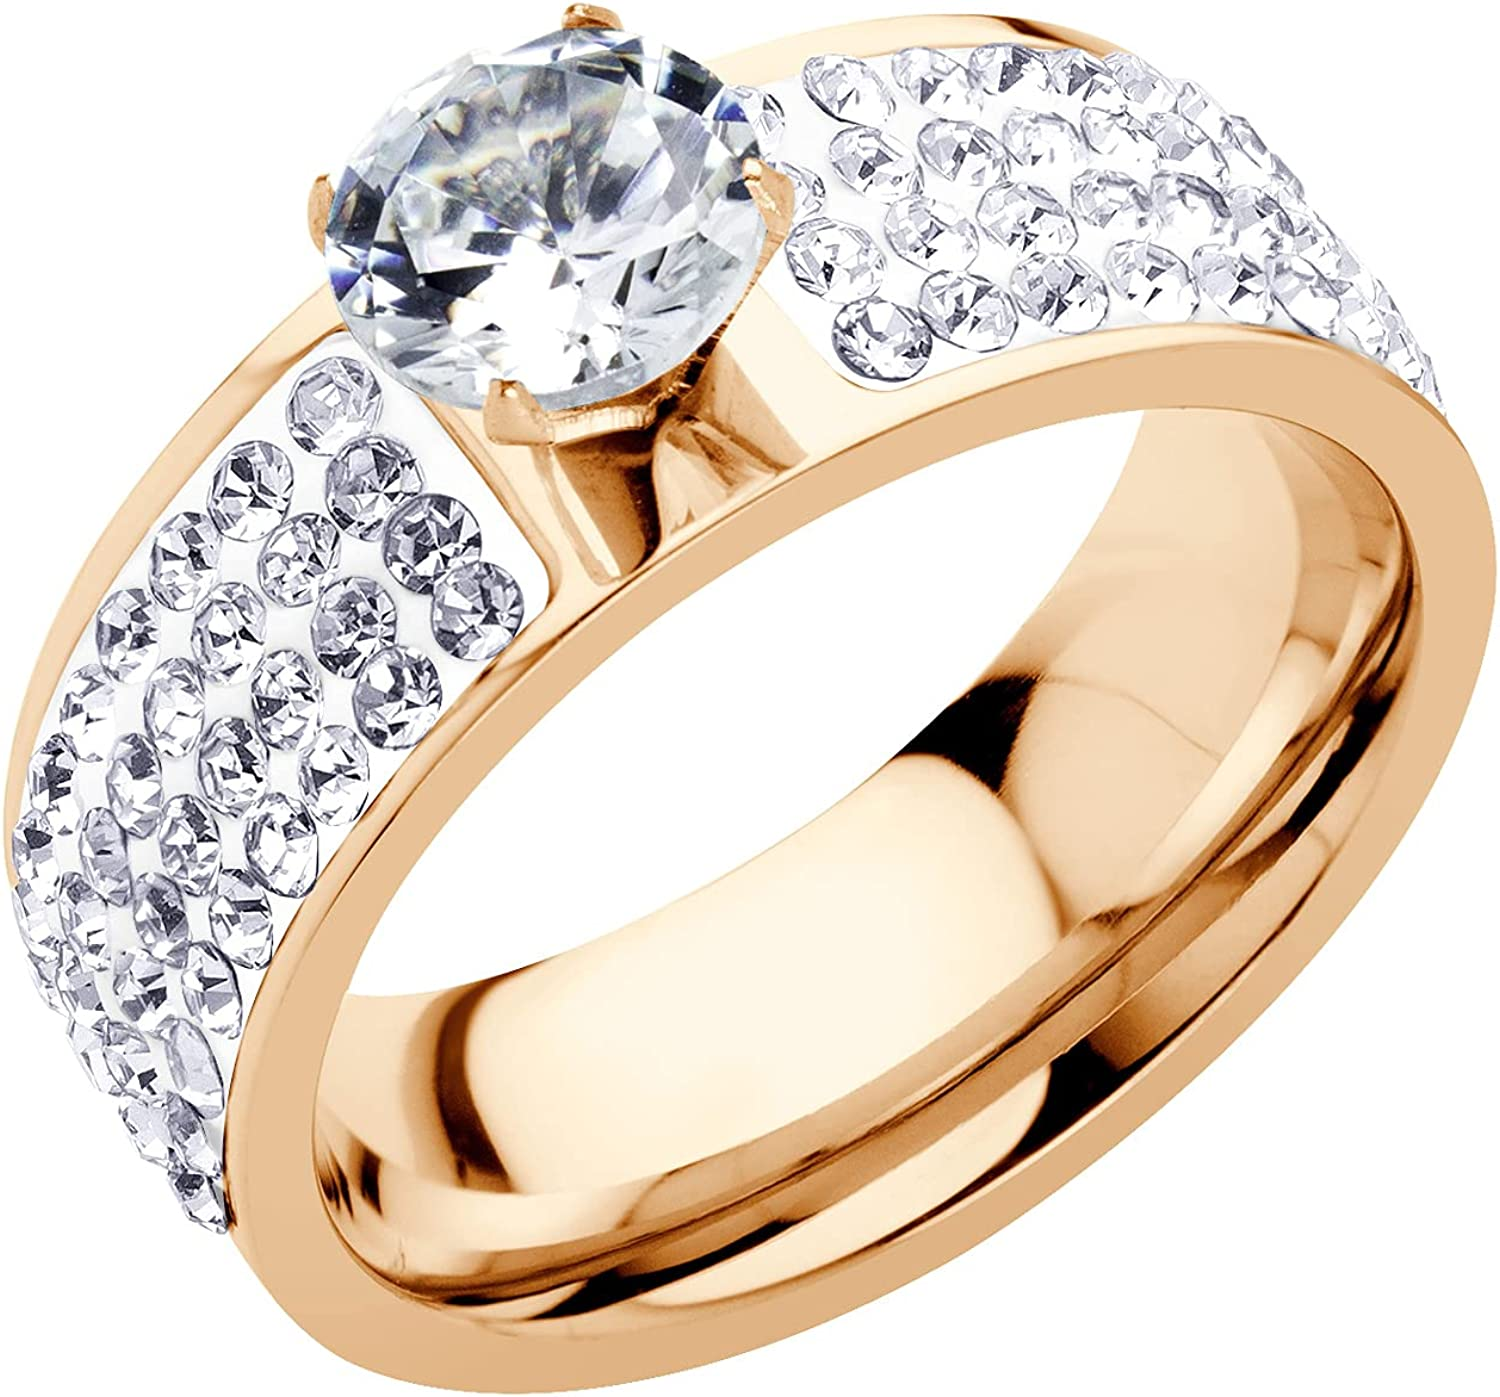 555Jewelry 13mm Wide Stainless Steel CZ & Hearts Ring for Women & Girls